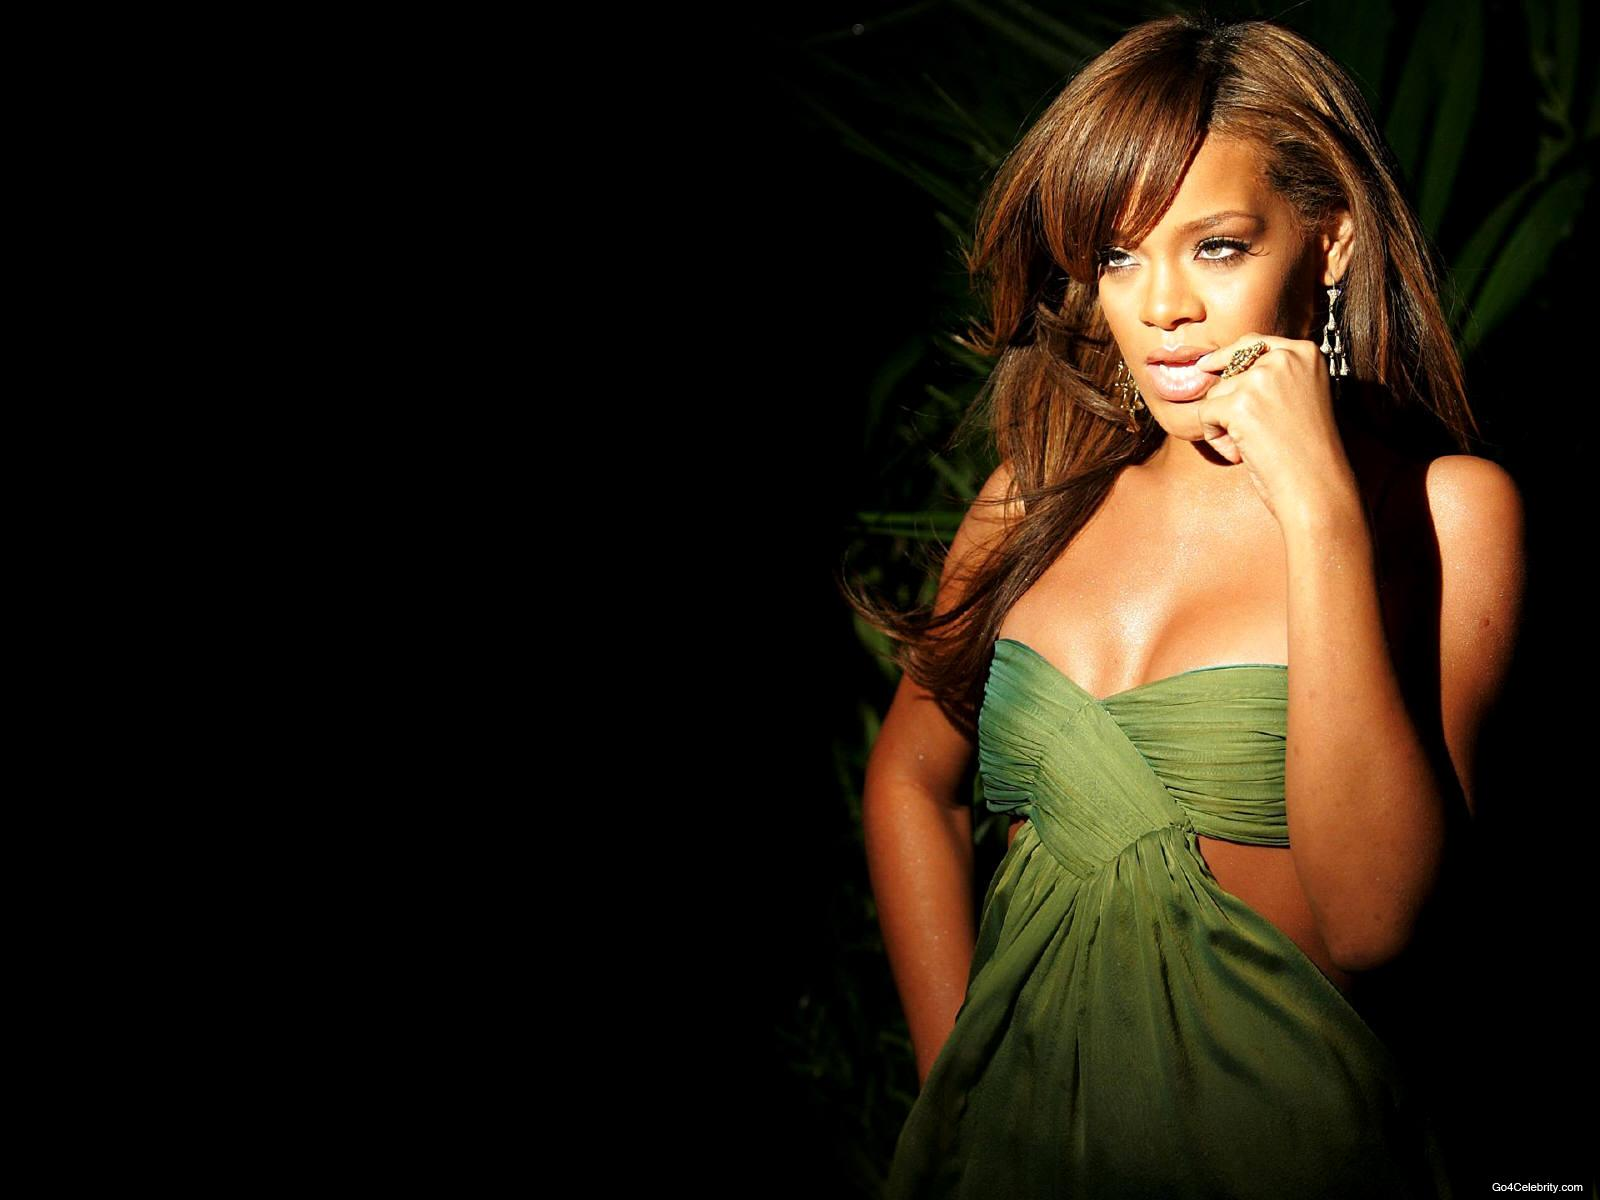 rihanna wallpaper hq wallpaper - photo #22